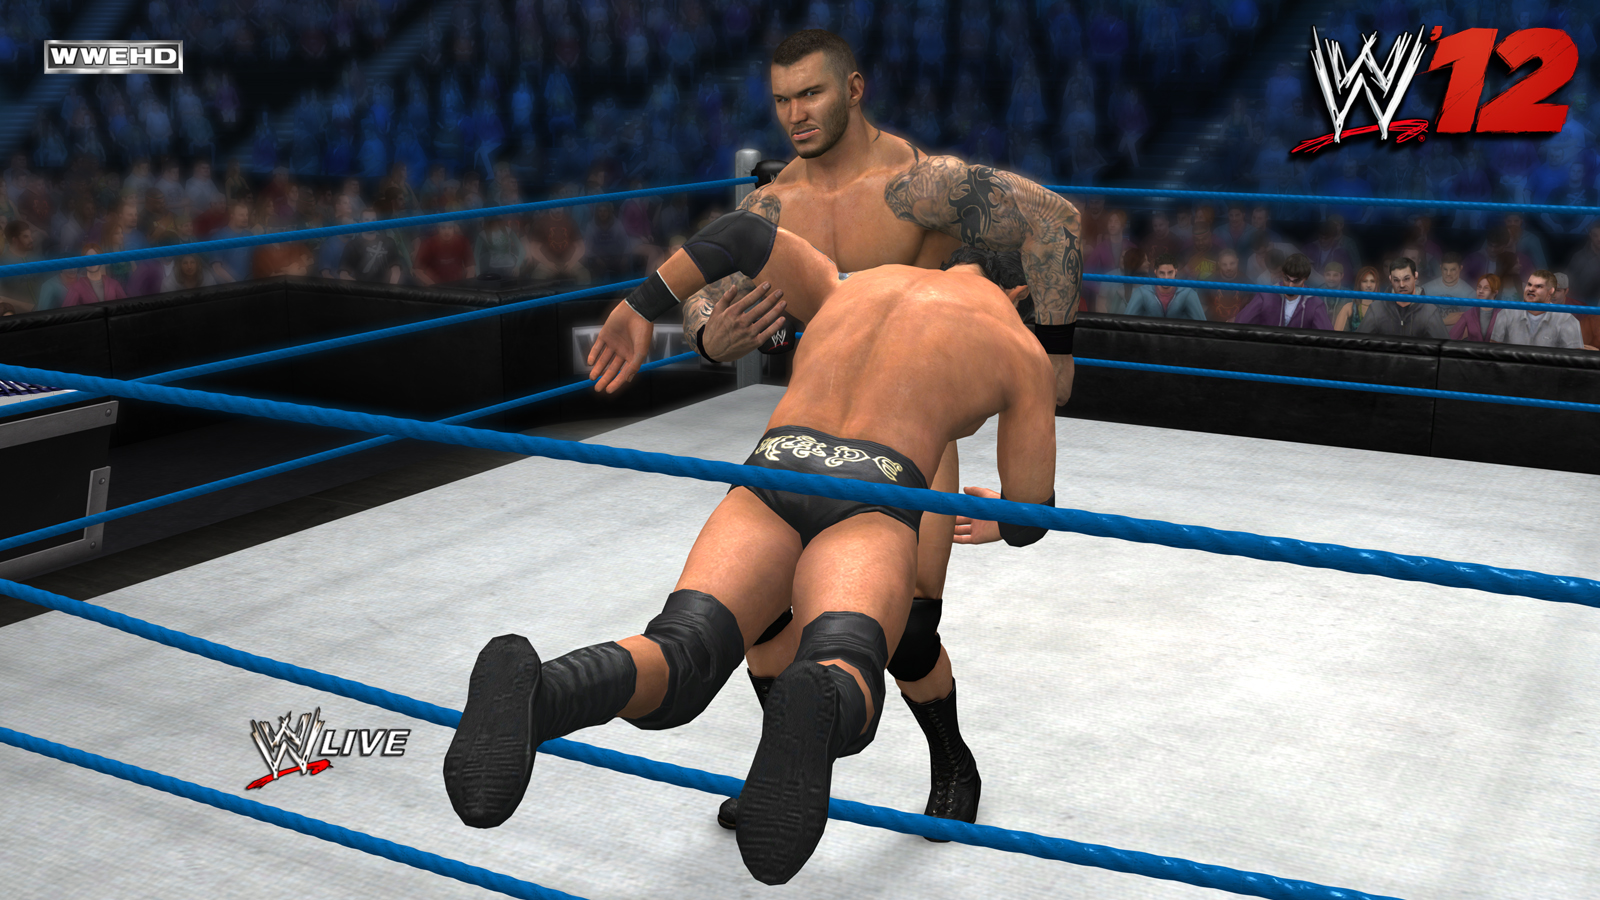 Wwe 2012 Randy Orton Finisher Randy Orton in Wwe '12